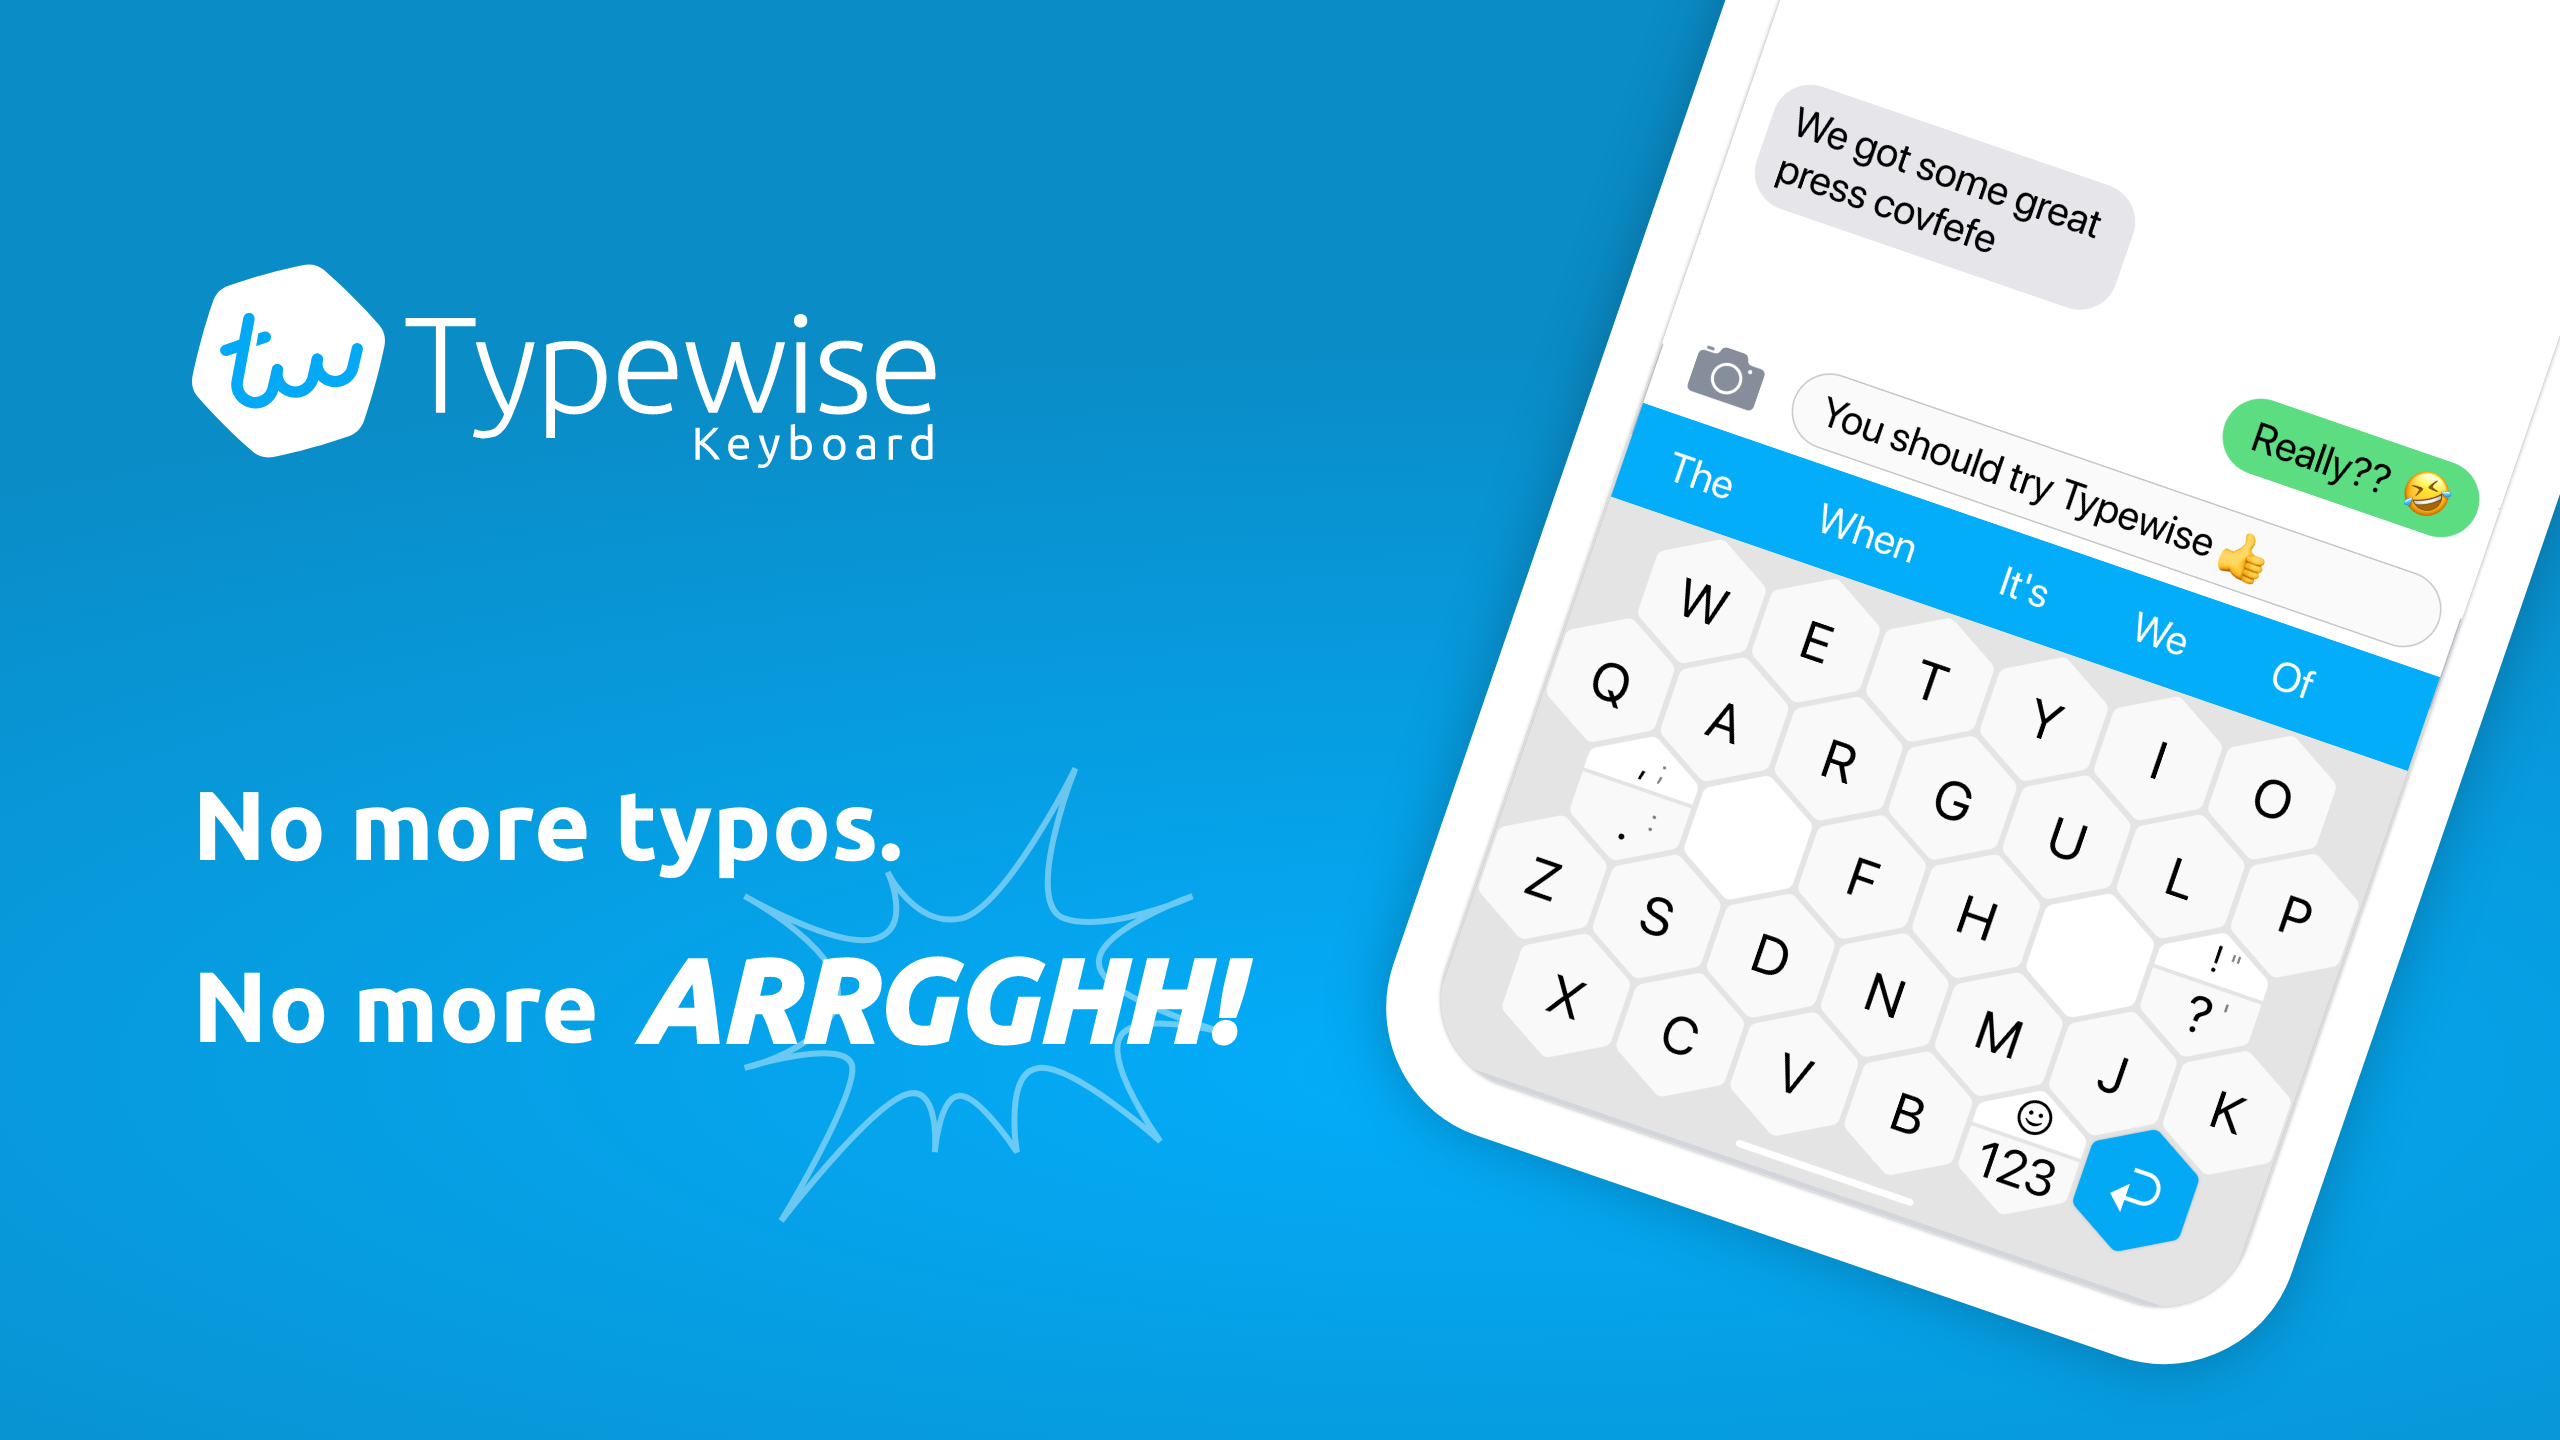 Typewise wants to get rid of the only keyboard layout you know how to use